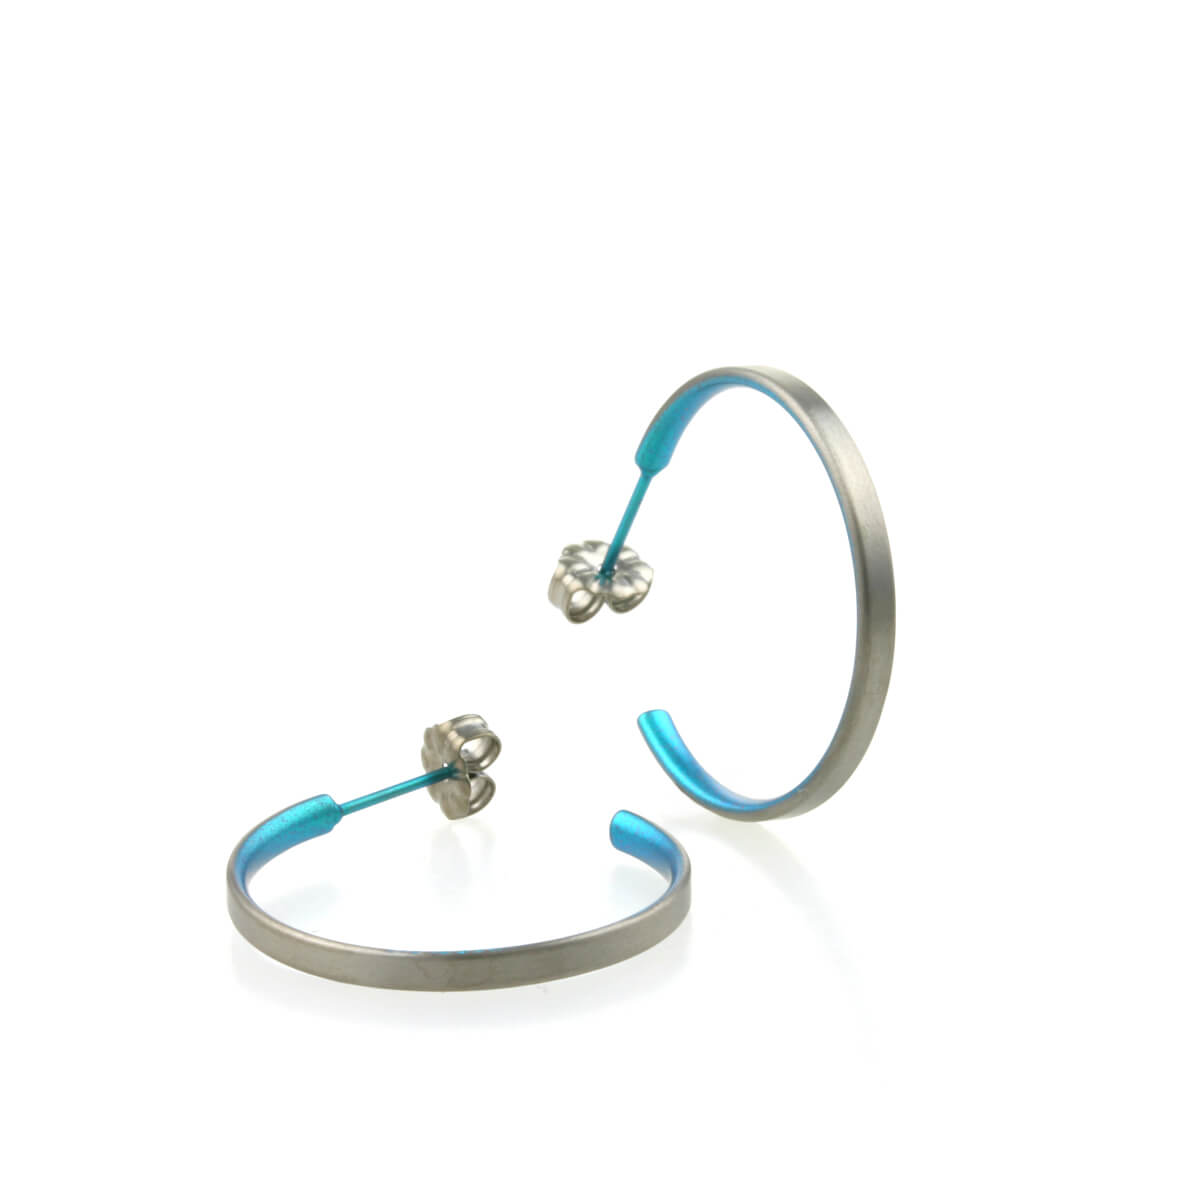 Ti2 Titanium Medium Hoop Earrings - Kingfisher Blue WPOGIiD